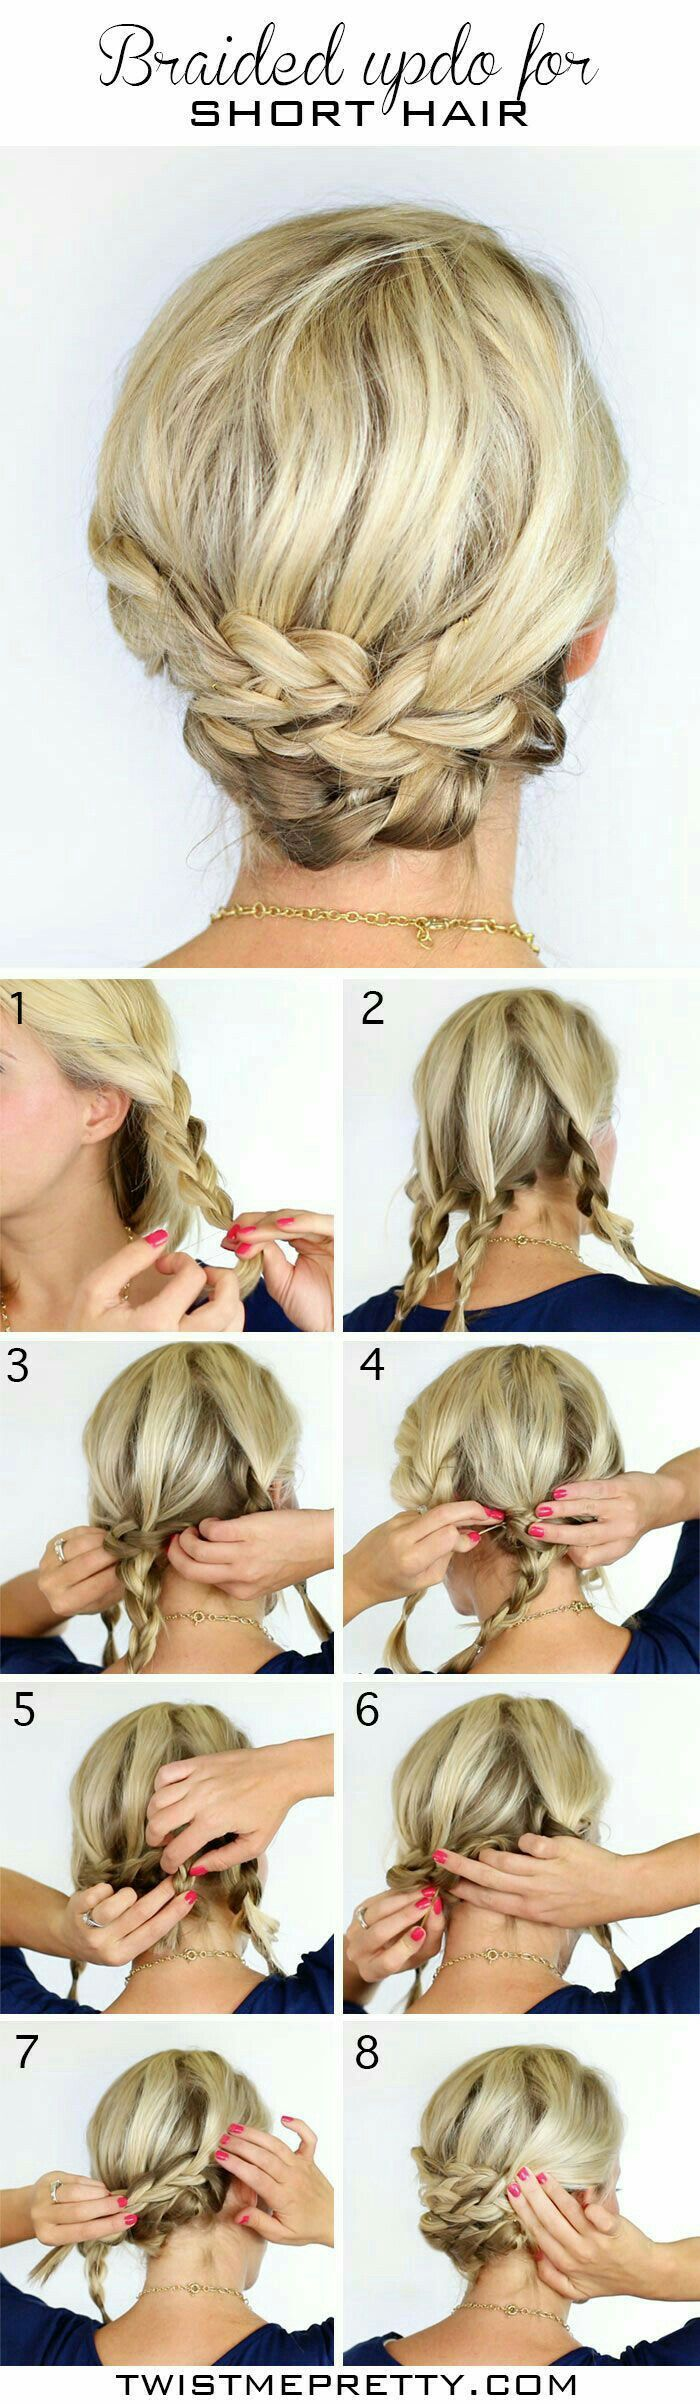 Braided Updo For Short Hair Shorts Hairstyle Ideas Braid Tutorial Braided Hairstyles Updo Short Hair Styles Long Hair Styles